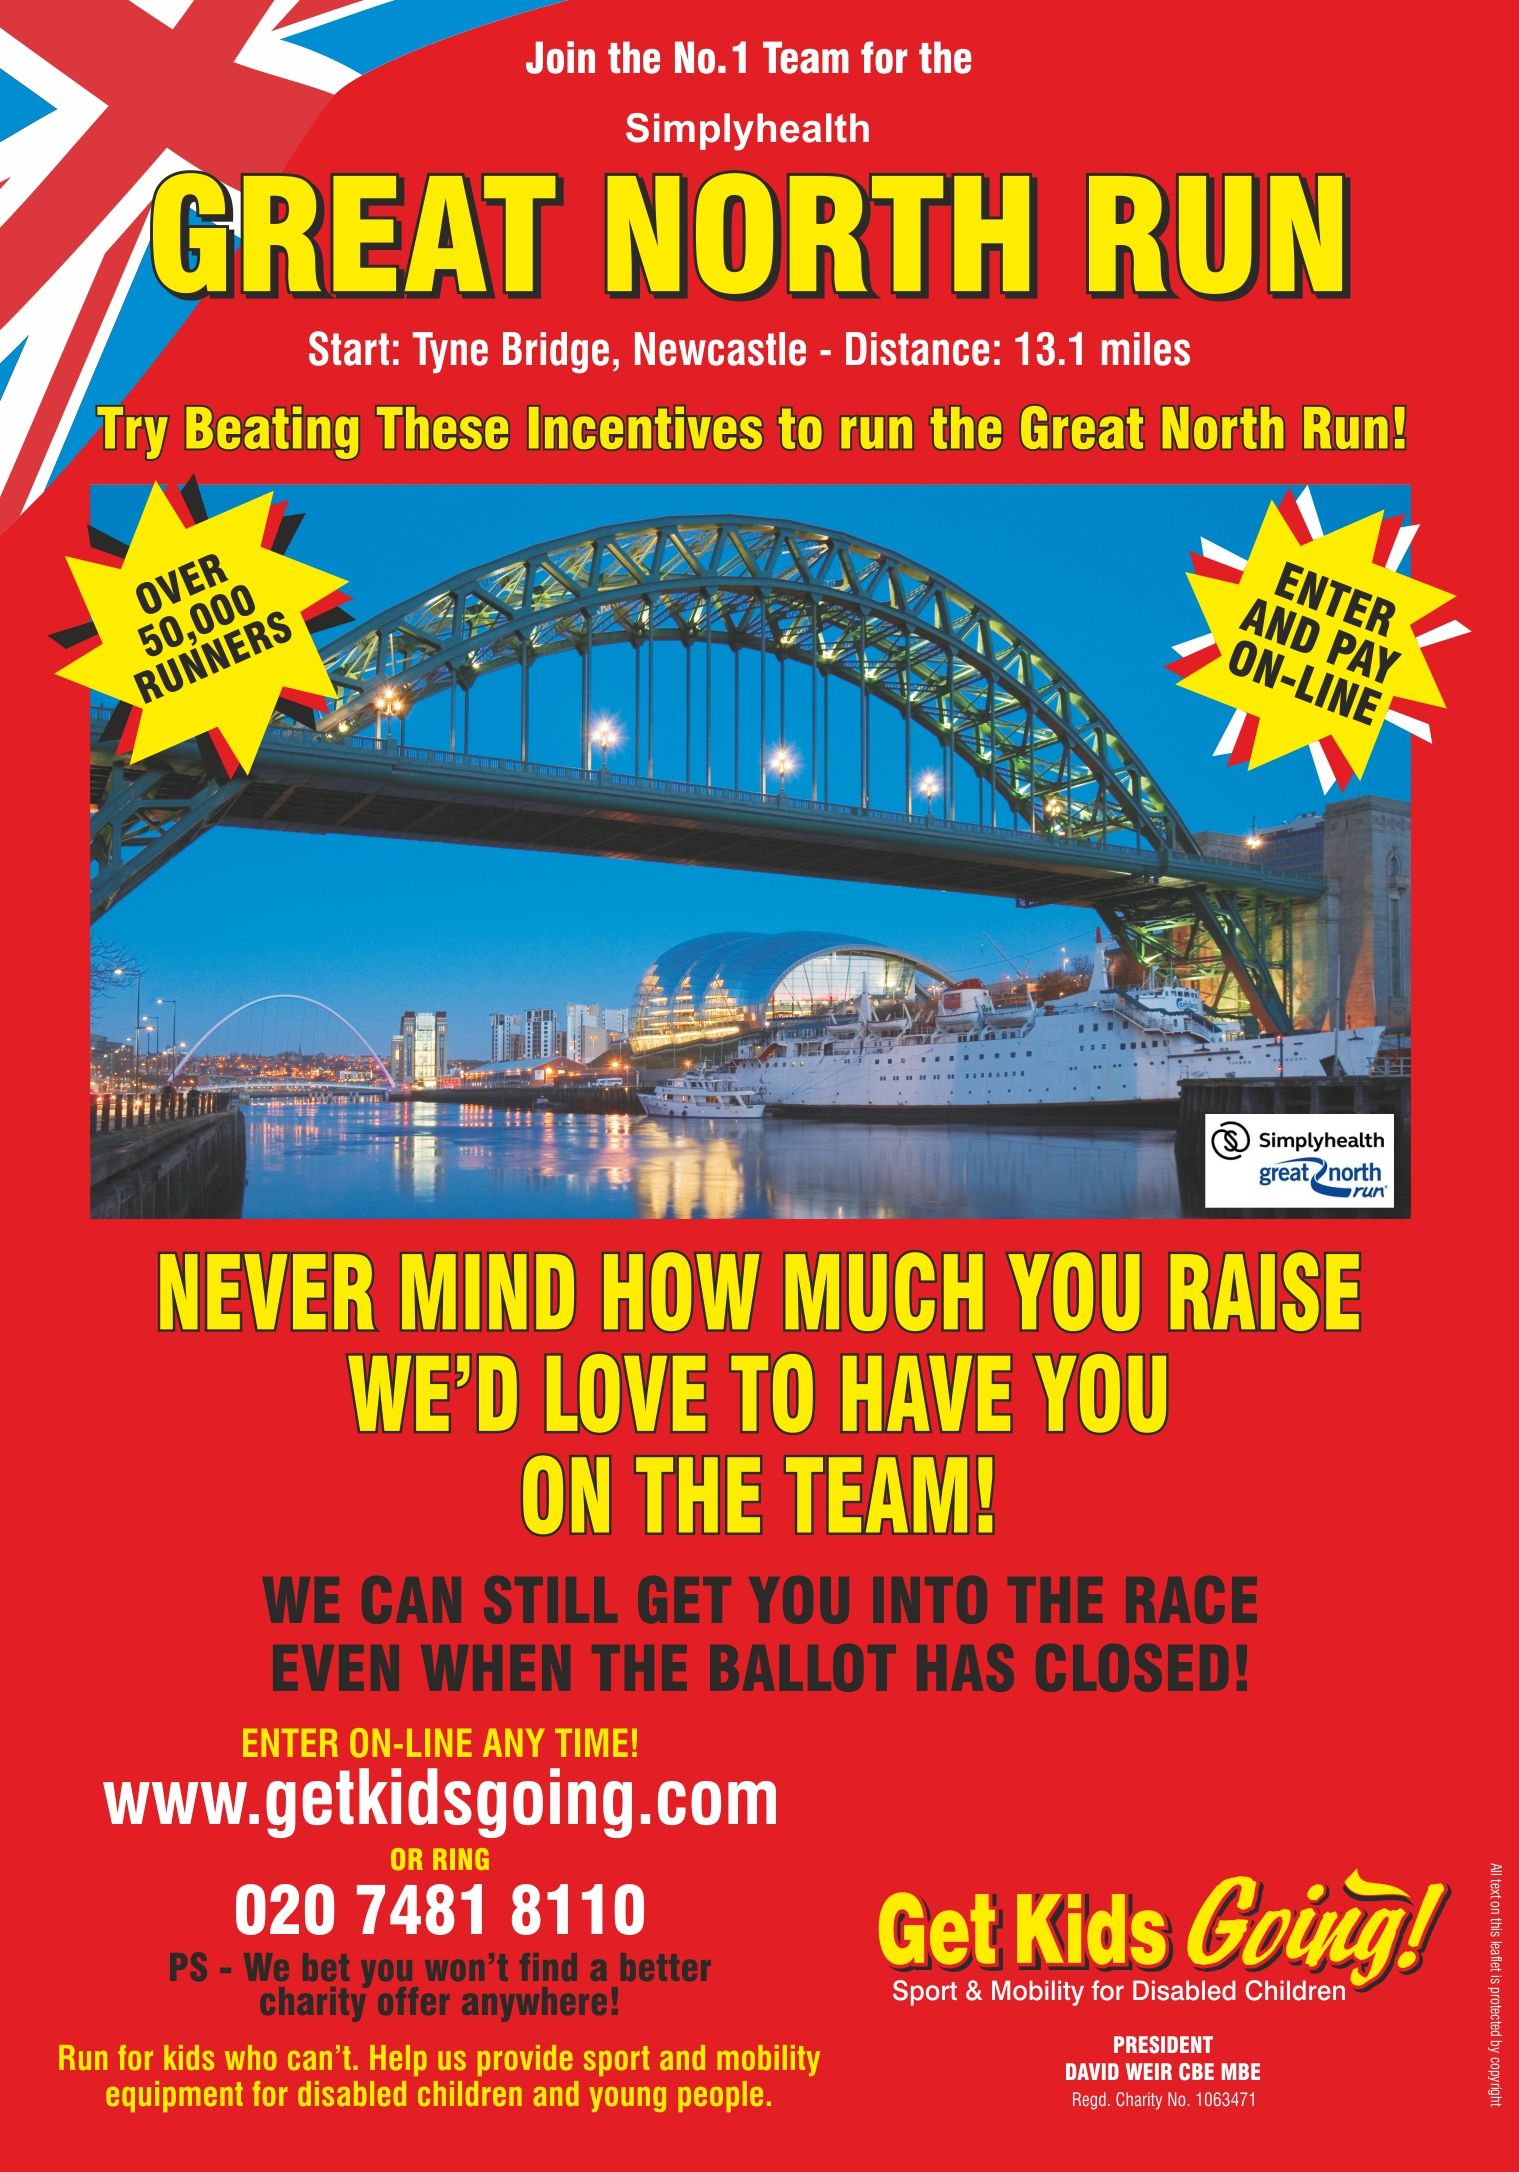 We have hundreds of guaranteed entry places available for the BUPA Great North Run 2017 just waiting to be filled! Get Kids Going! is a unique, national charity that gives disabled children and young people the wonderful opportunity of participating in sport. Help us to Turn their Dreams Into Reality